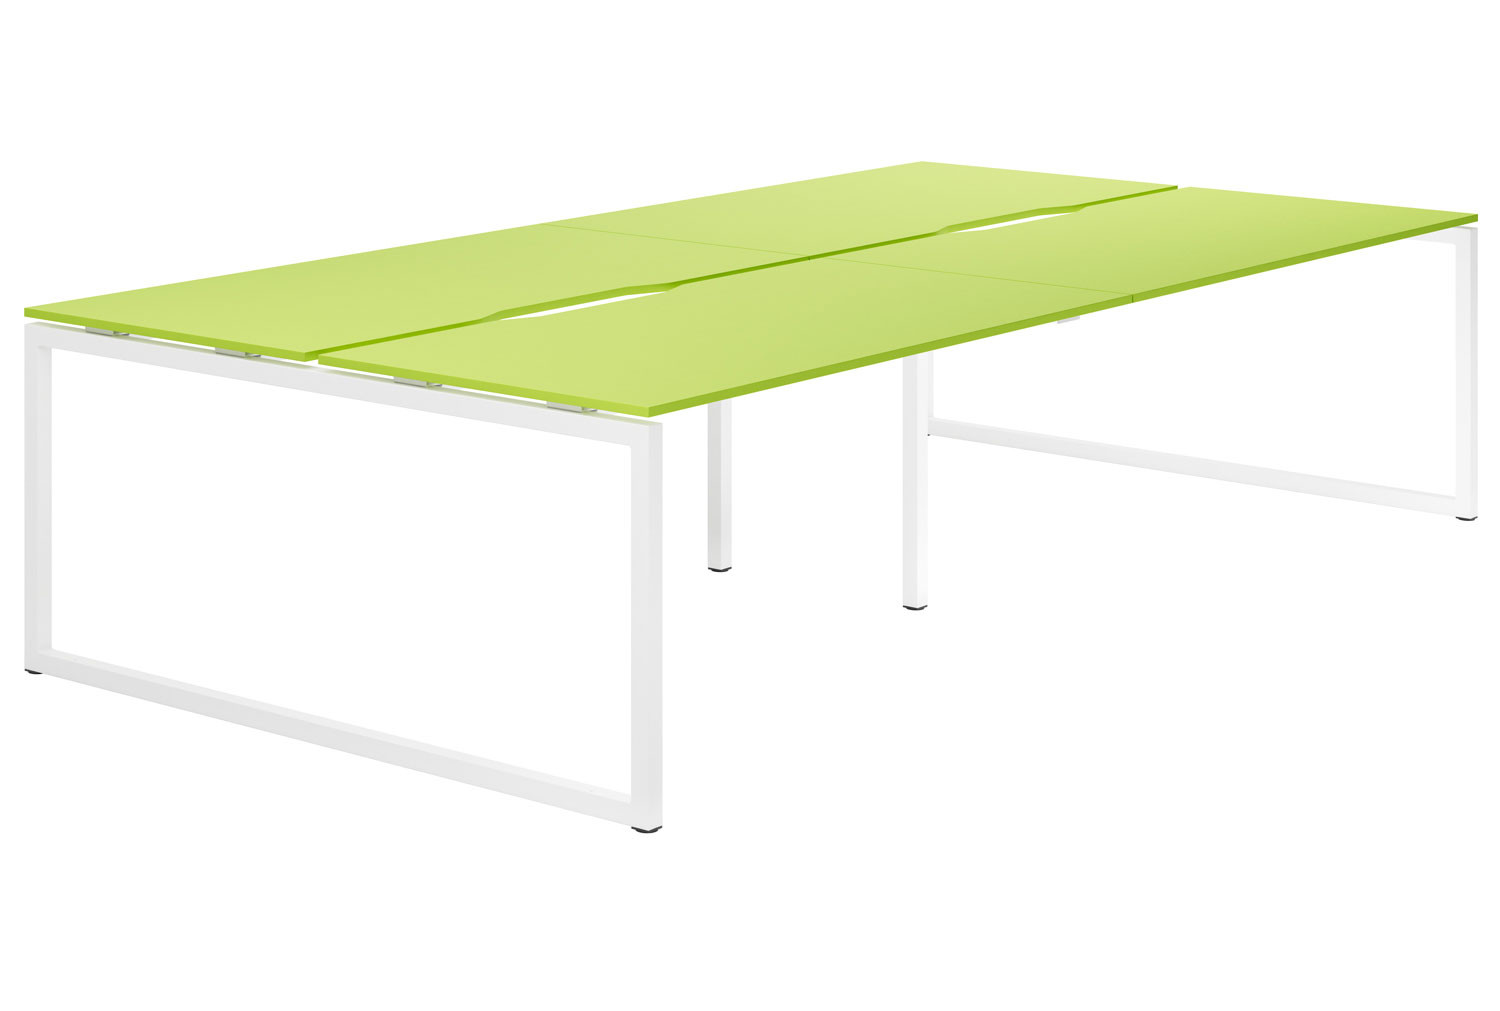 Campos Hooped Leg 4 Person Back To Back Bench Desk (Green)